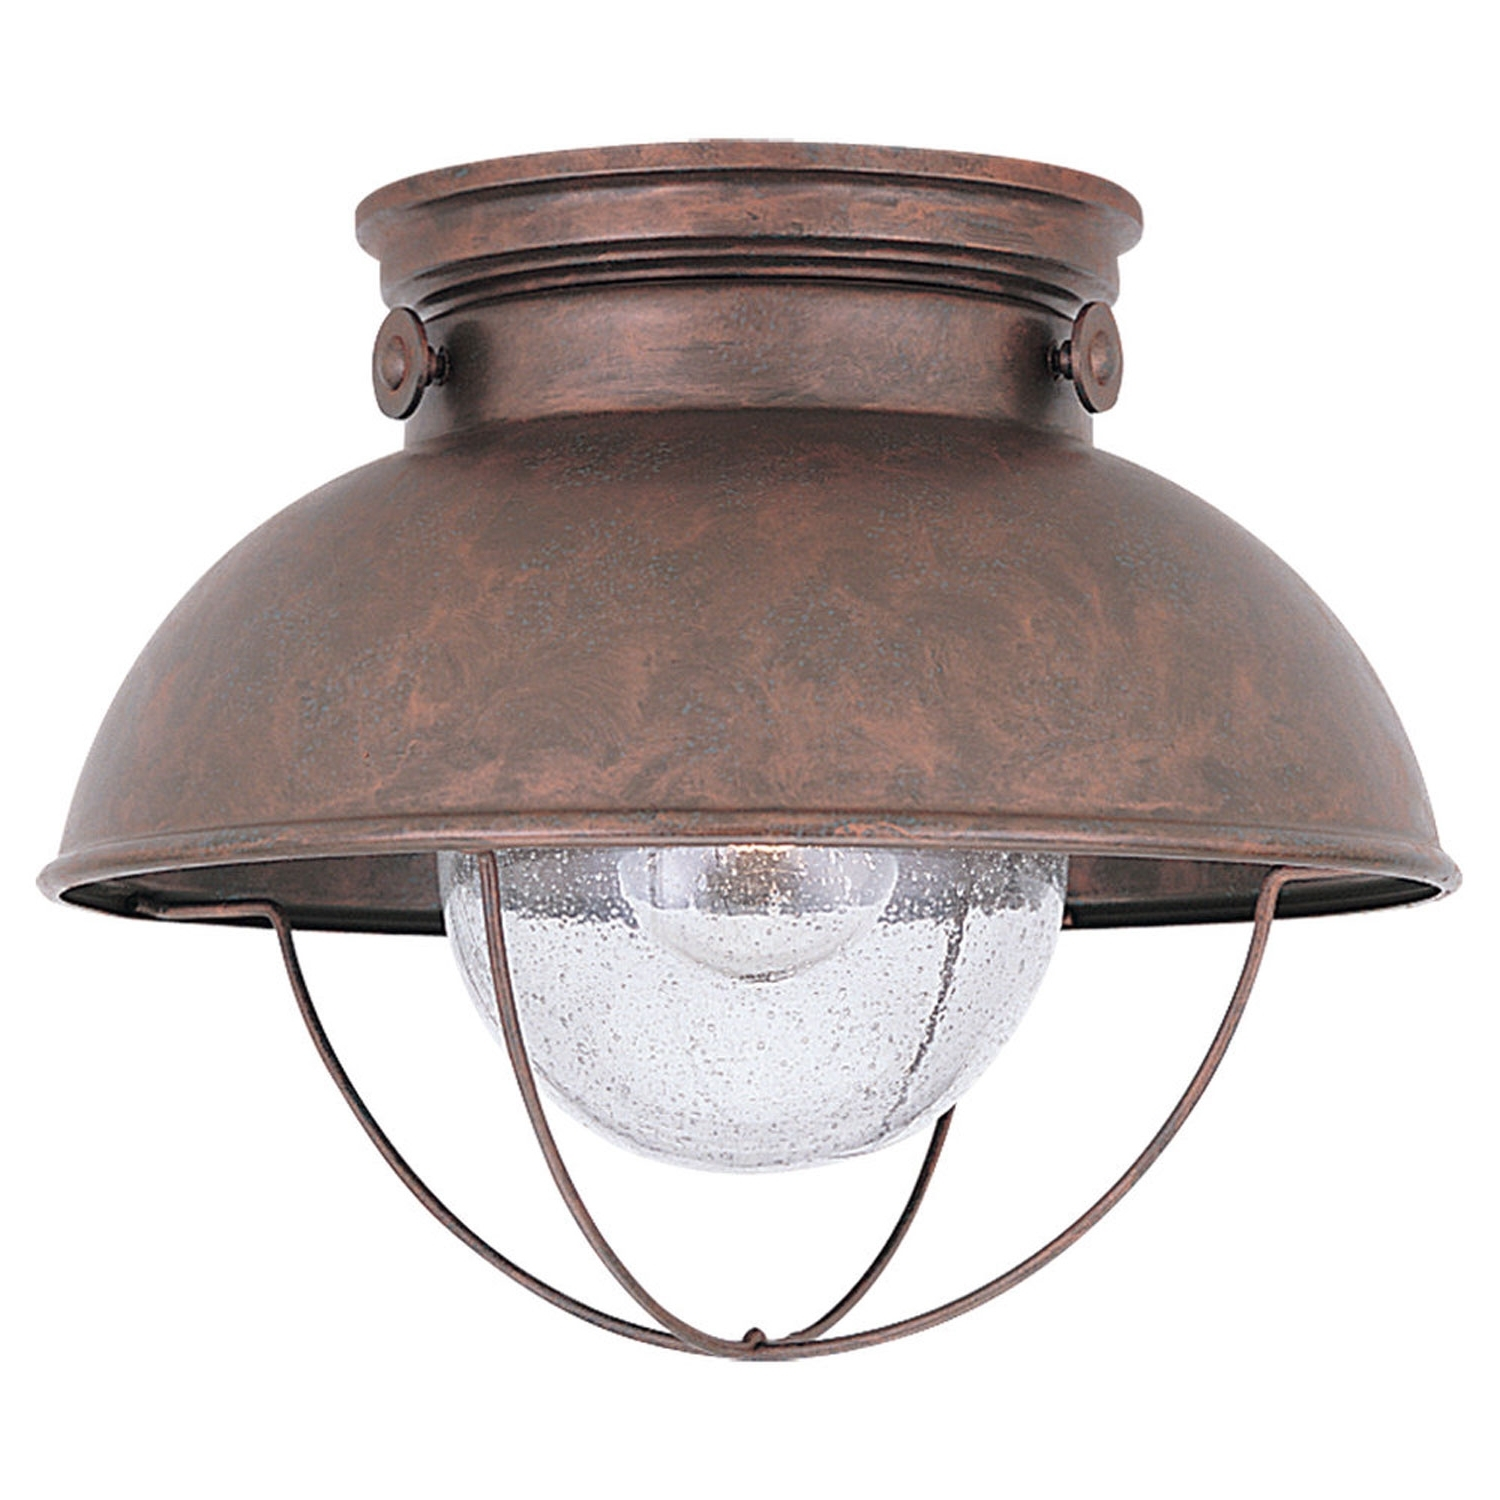 Sea Gull Lighting Sebring Weathered Copper Outdoor Ceiling Light Inside Most Current Outdoor Ceiling Can Lights (View 18 of 20)